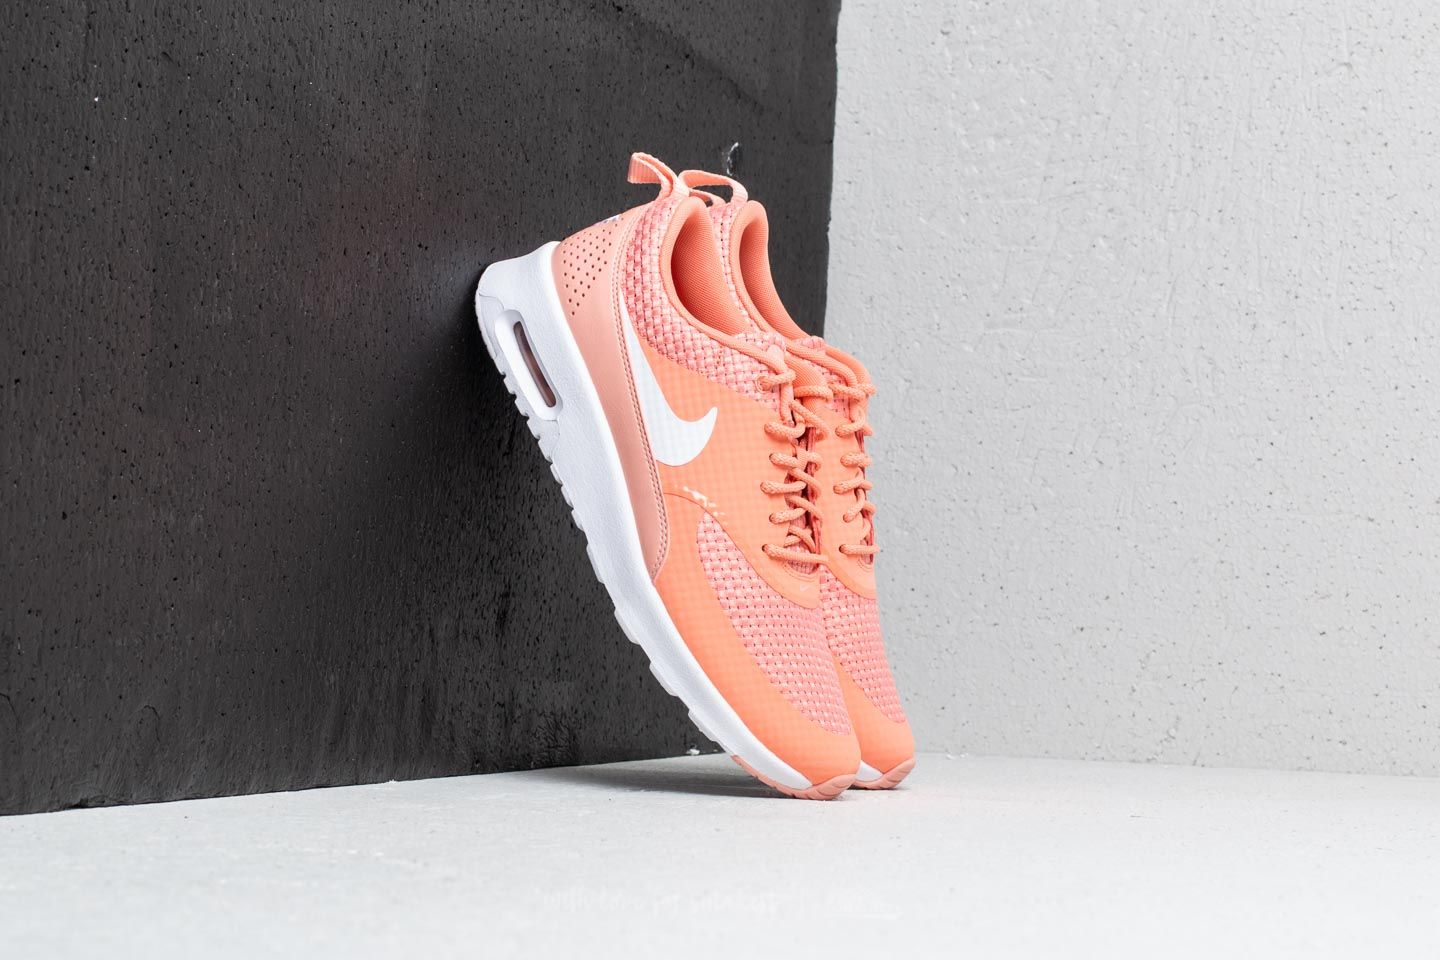 competitive price 5bf46 a9524 Nike Wmns Air Max Thea Premium Crimson Bliss  White at a great price £63